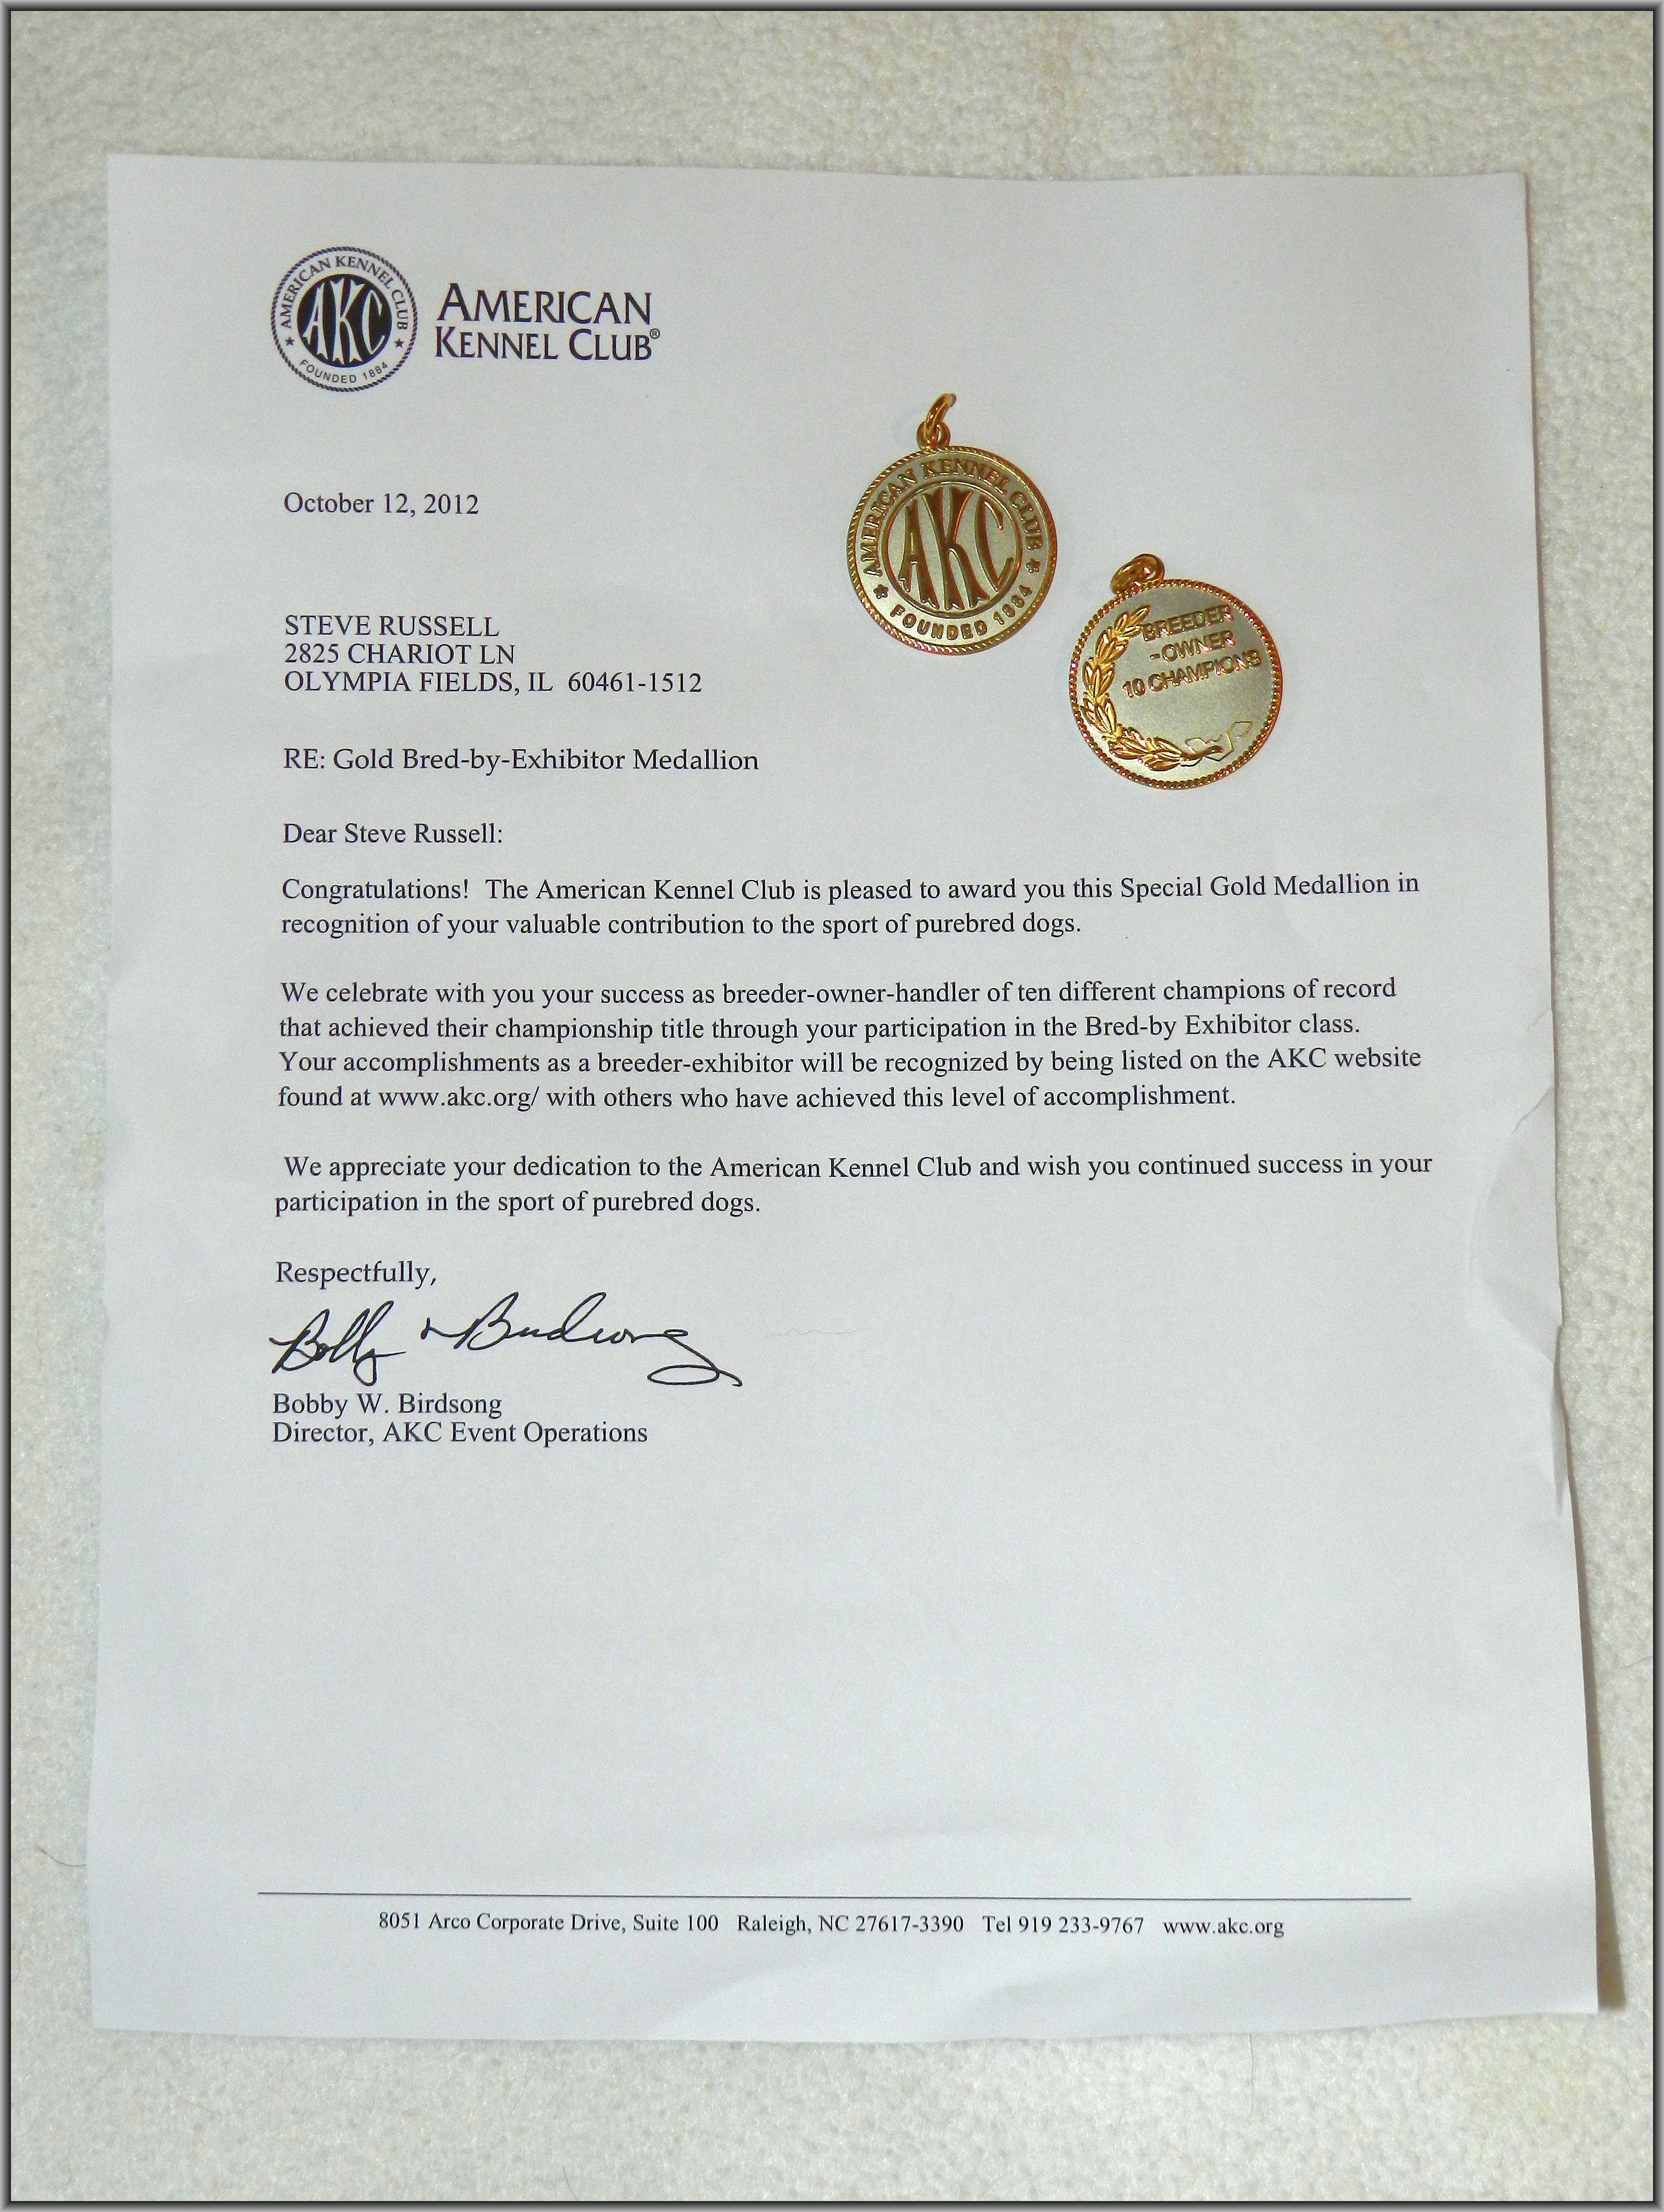 AKC Gold BBE Letter and Medals